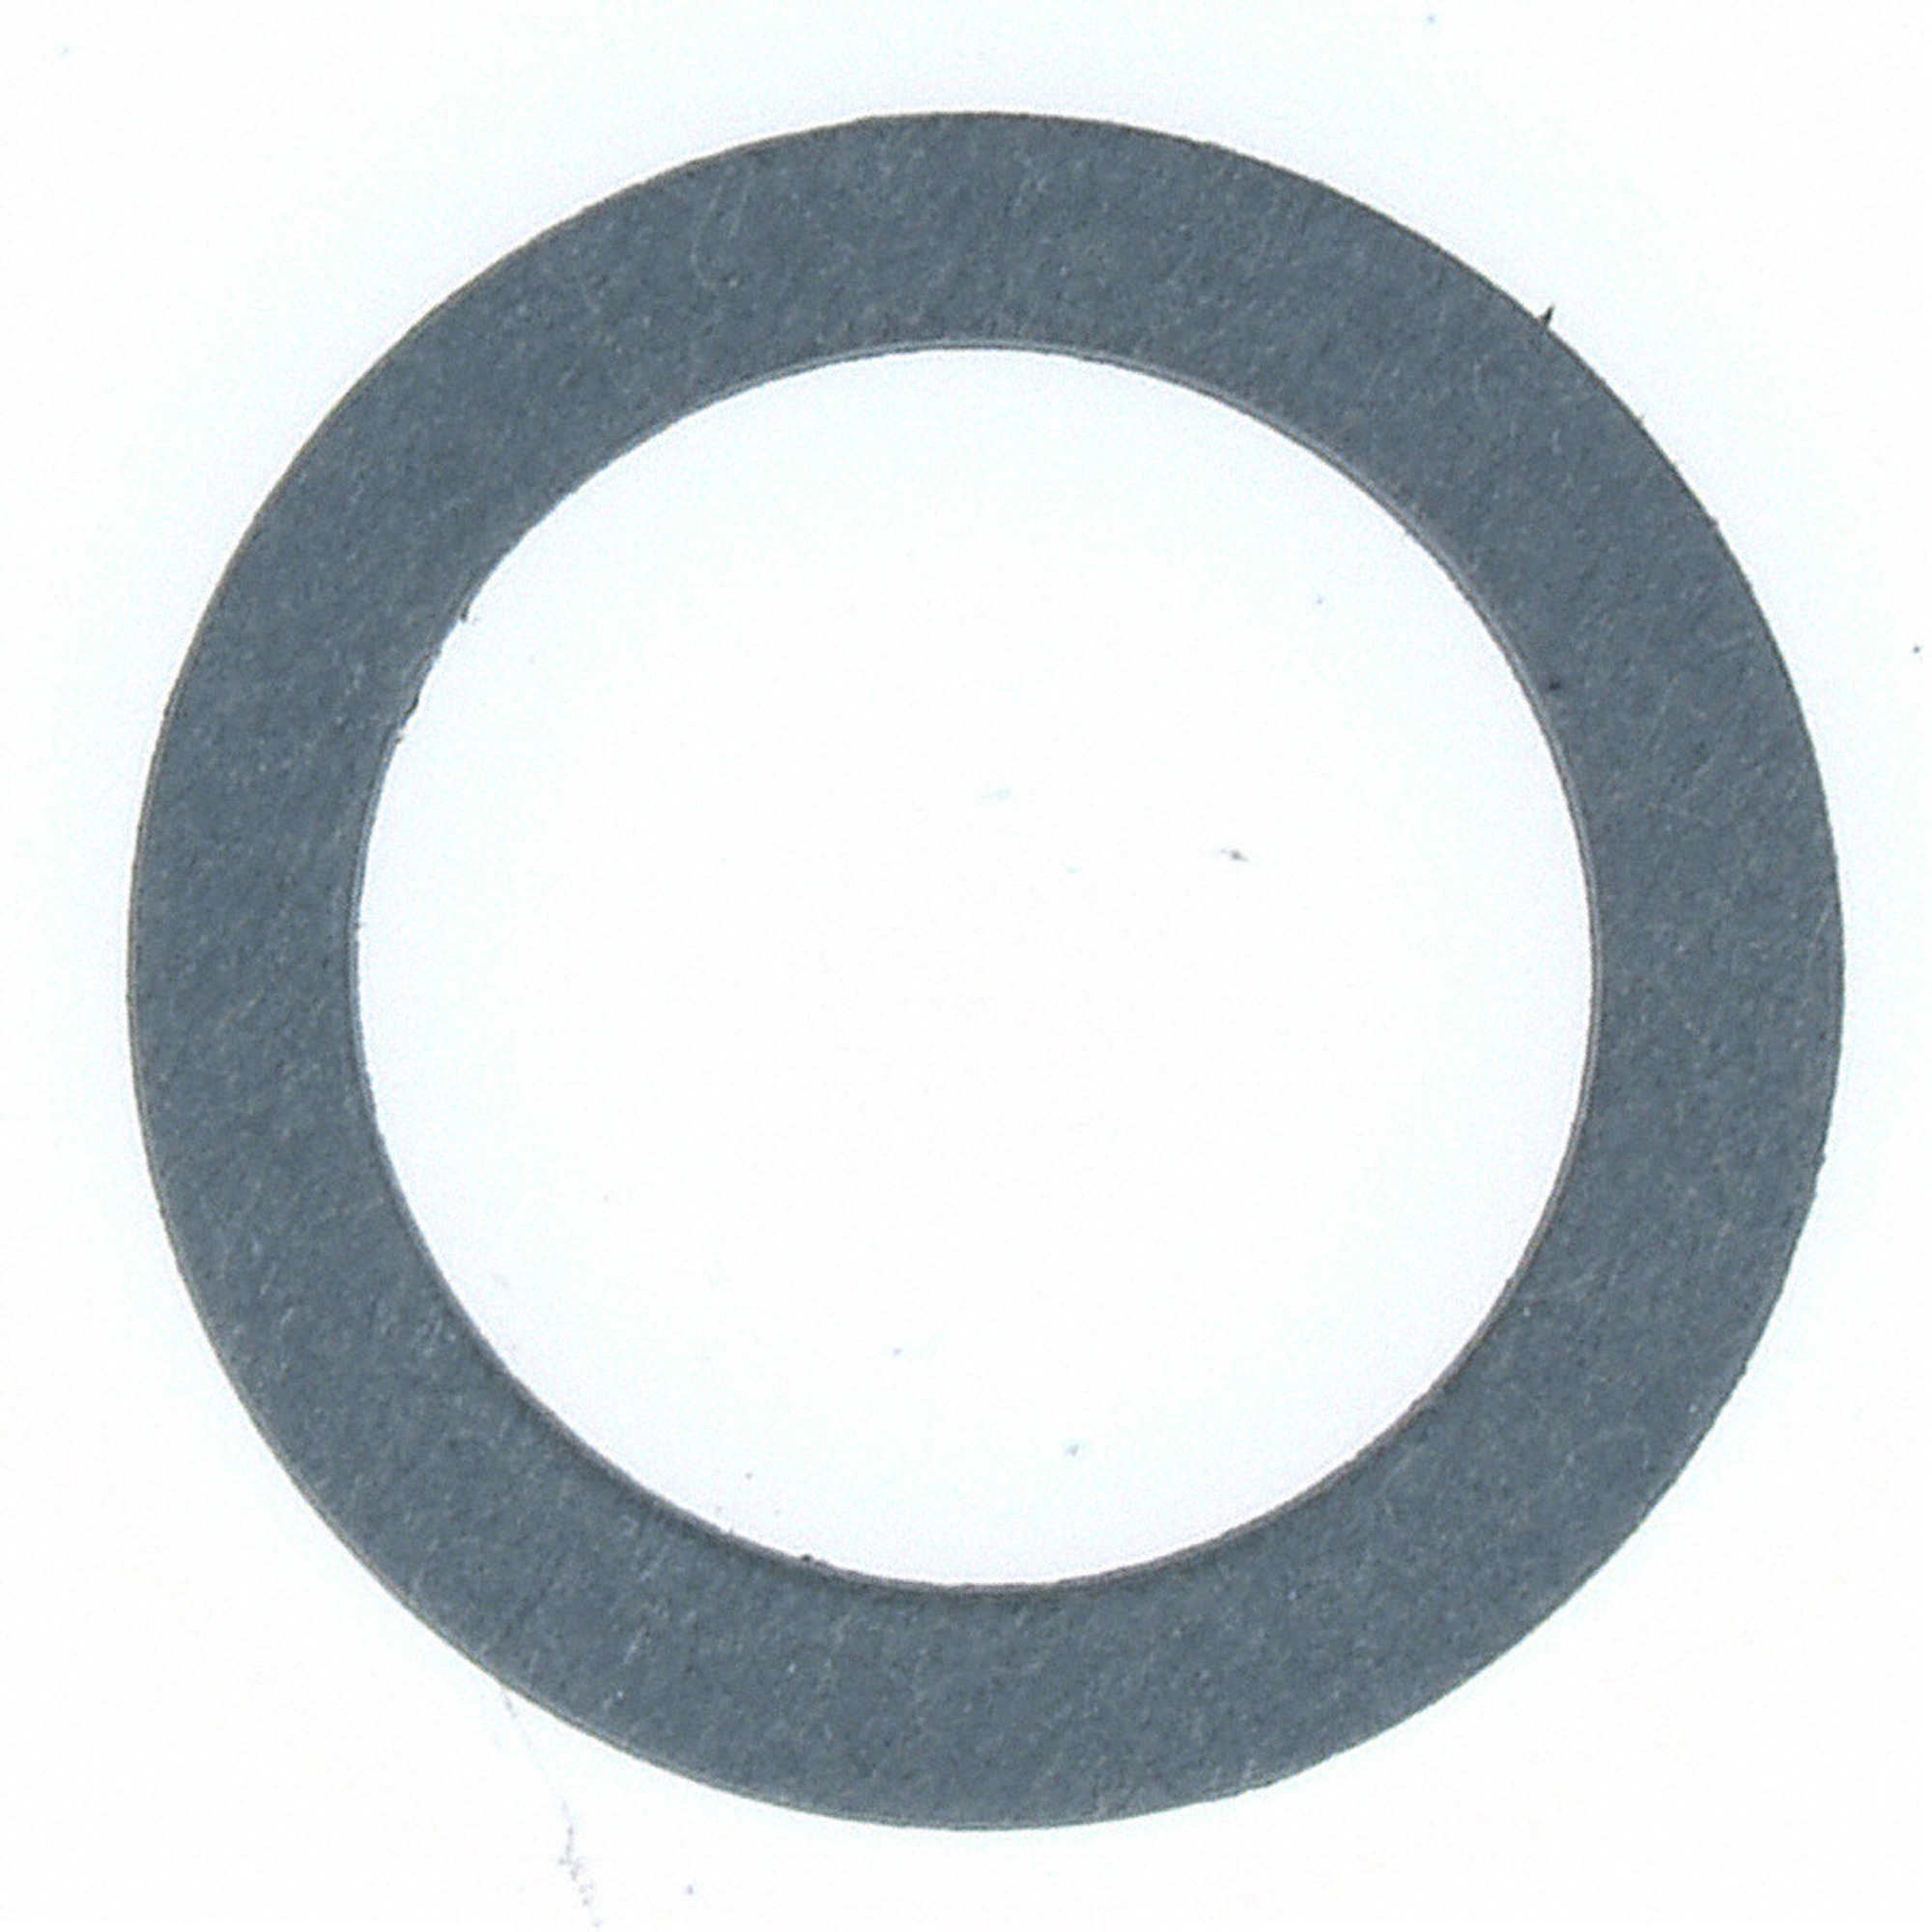 Engine Oil Pressure Relief Valve Gasket